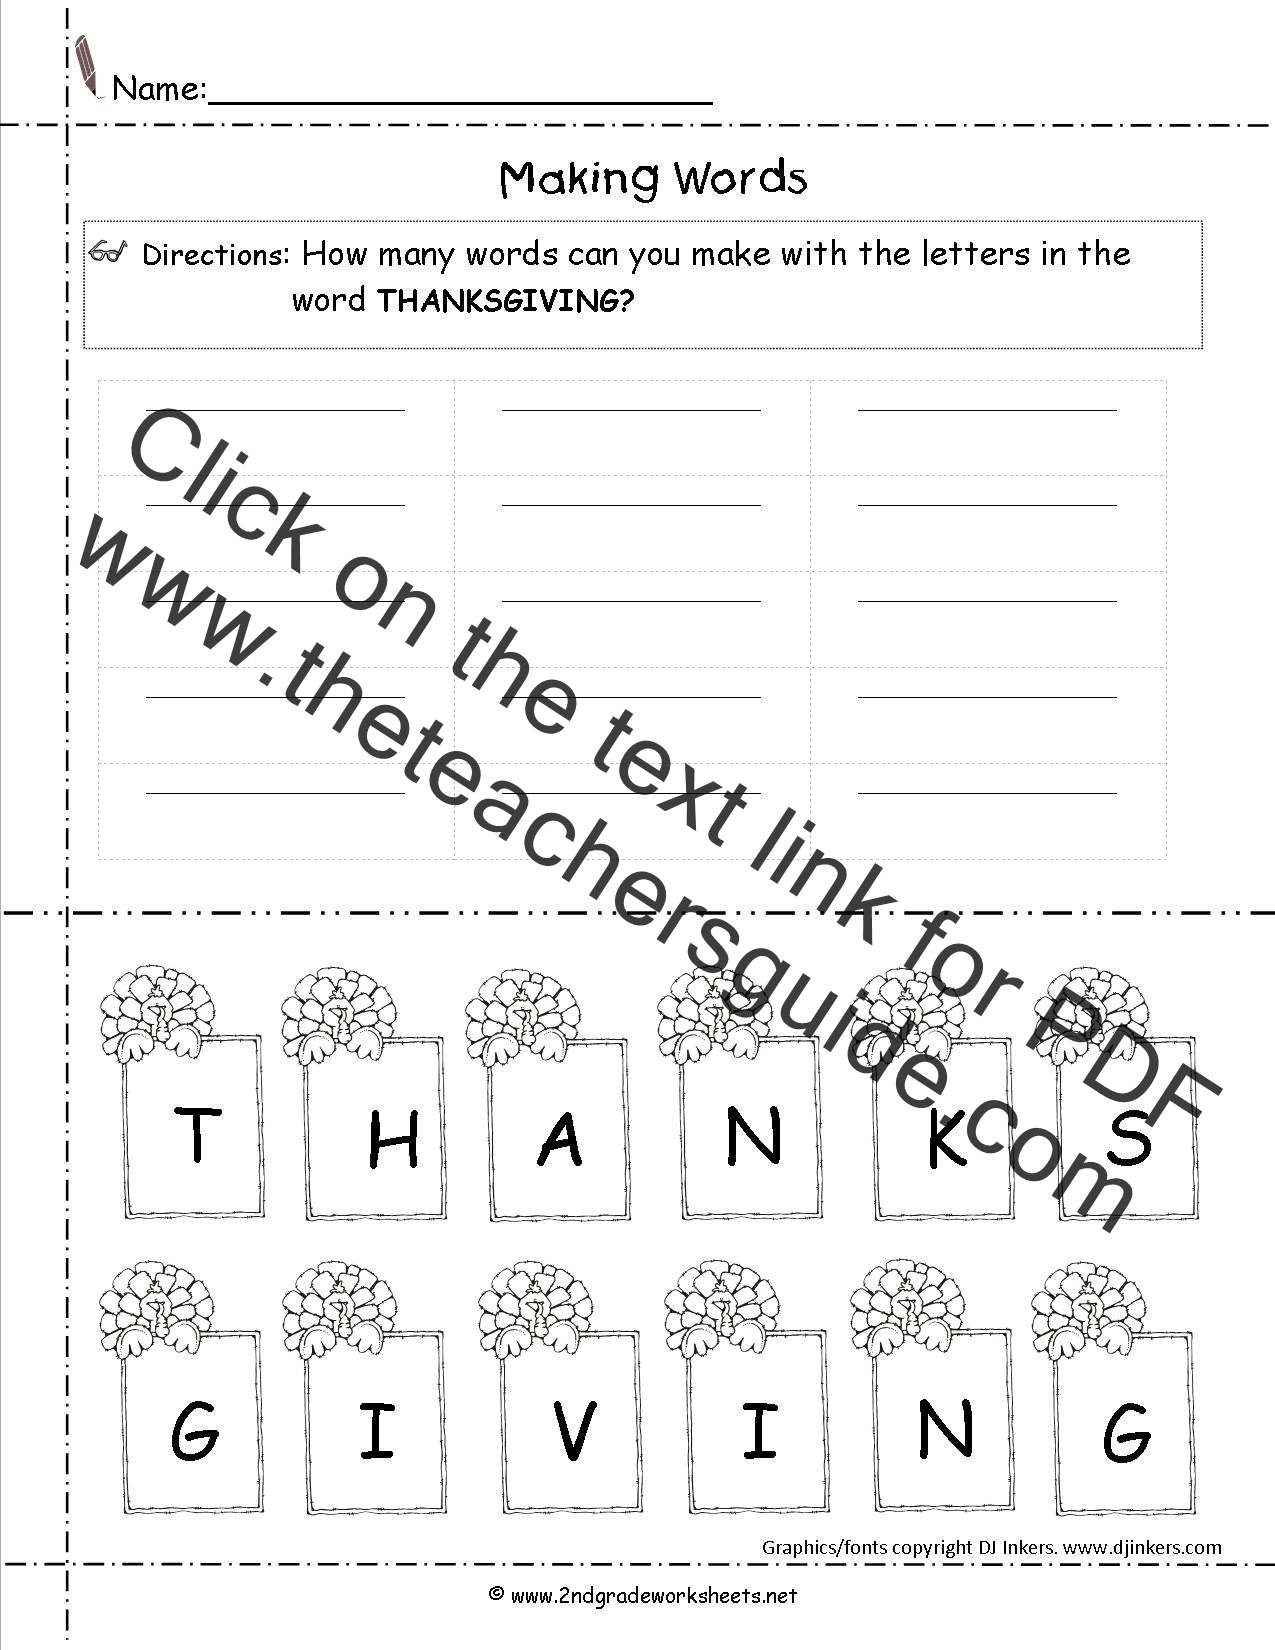 worksheet Thanksgiving Worksheets Free thanksgiving printouts and worksheets making words worksheet